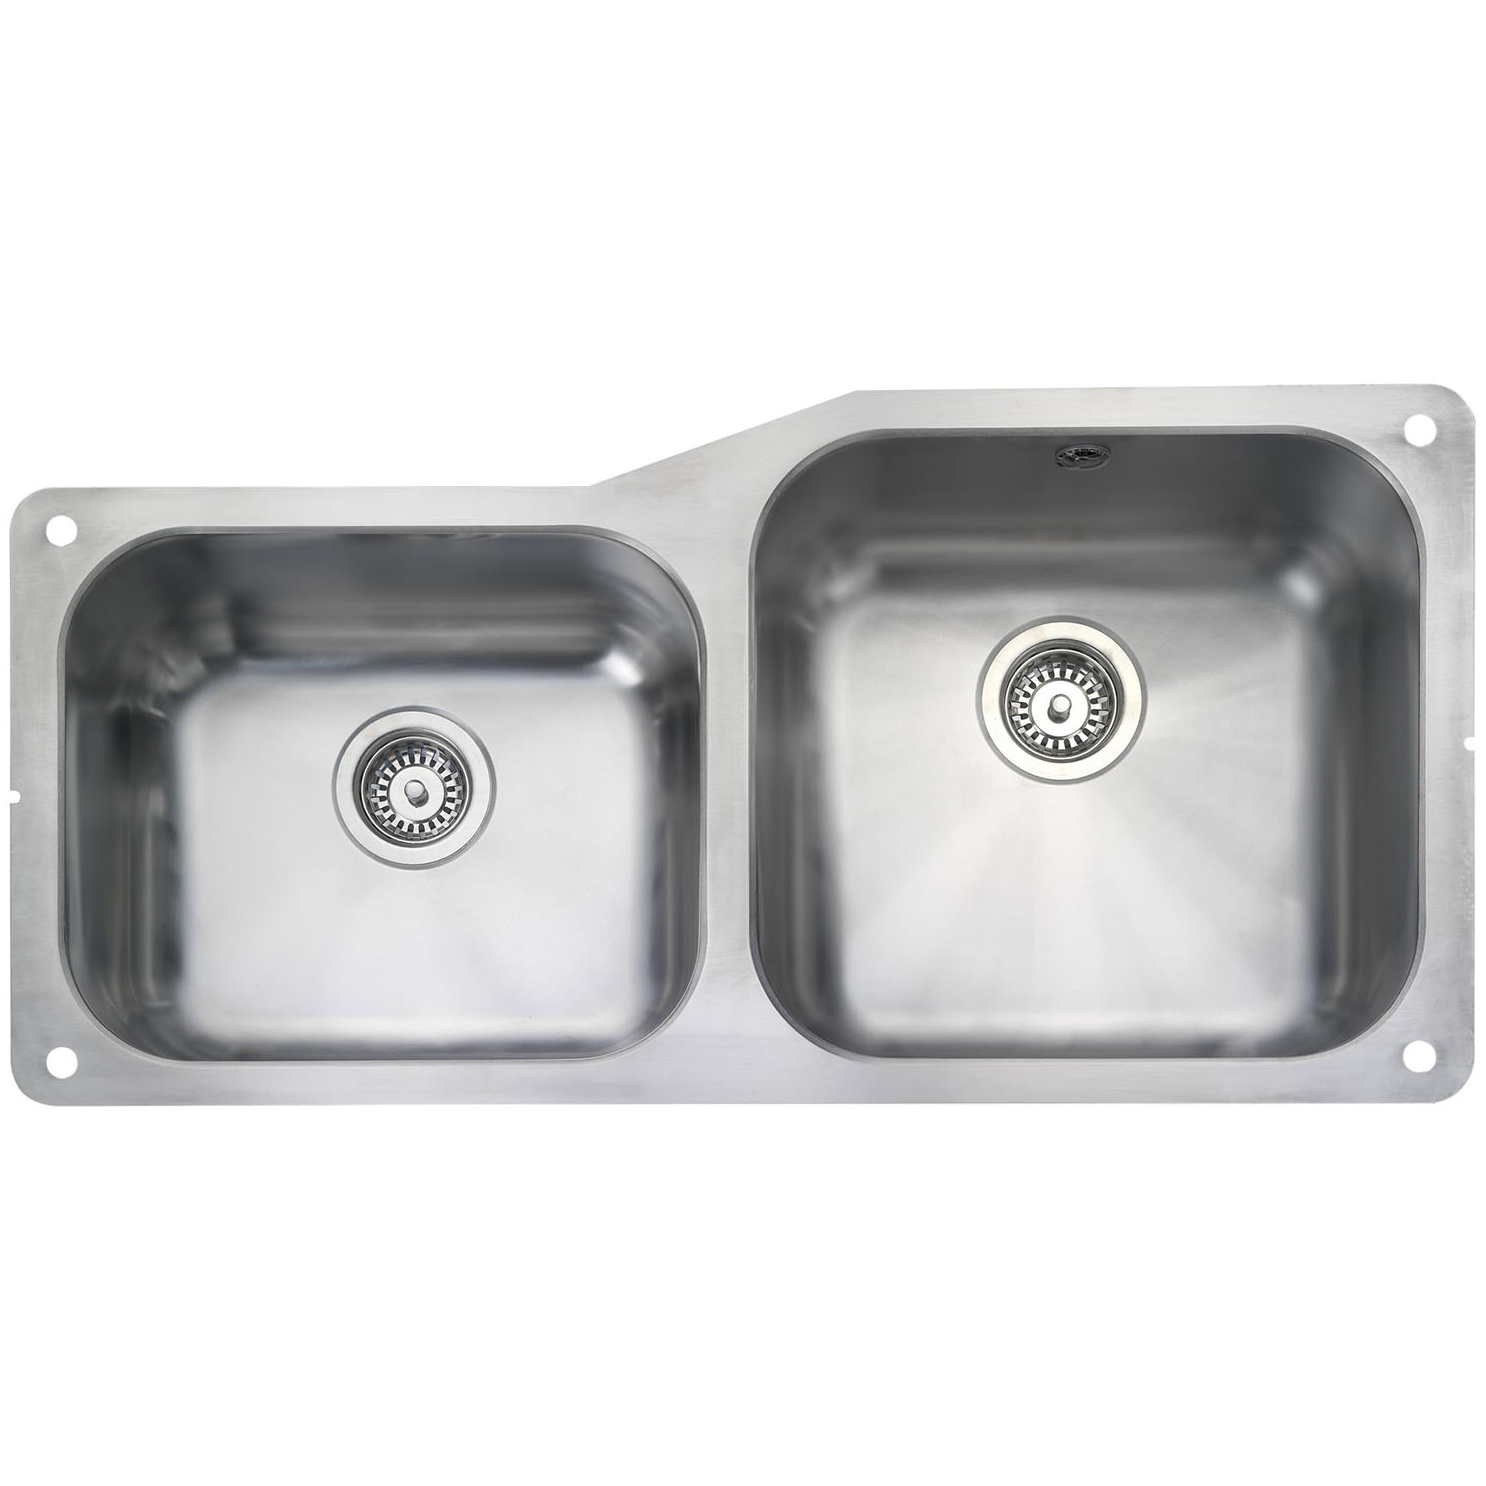 classic kitchen sink how to arrange pots and pans in rangemaster atlantic 2 bowl undermount small lh